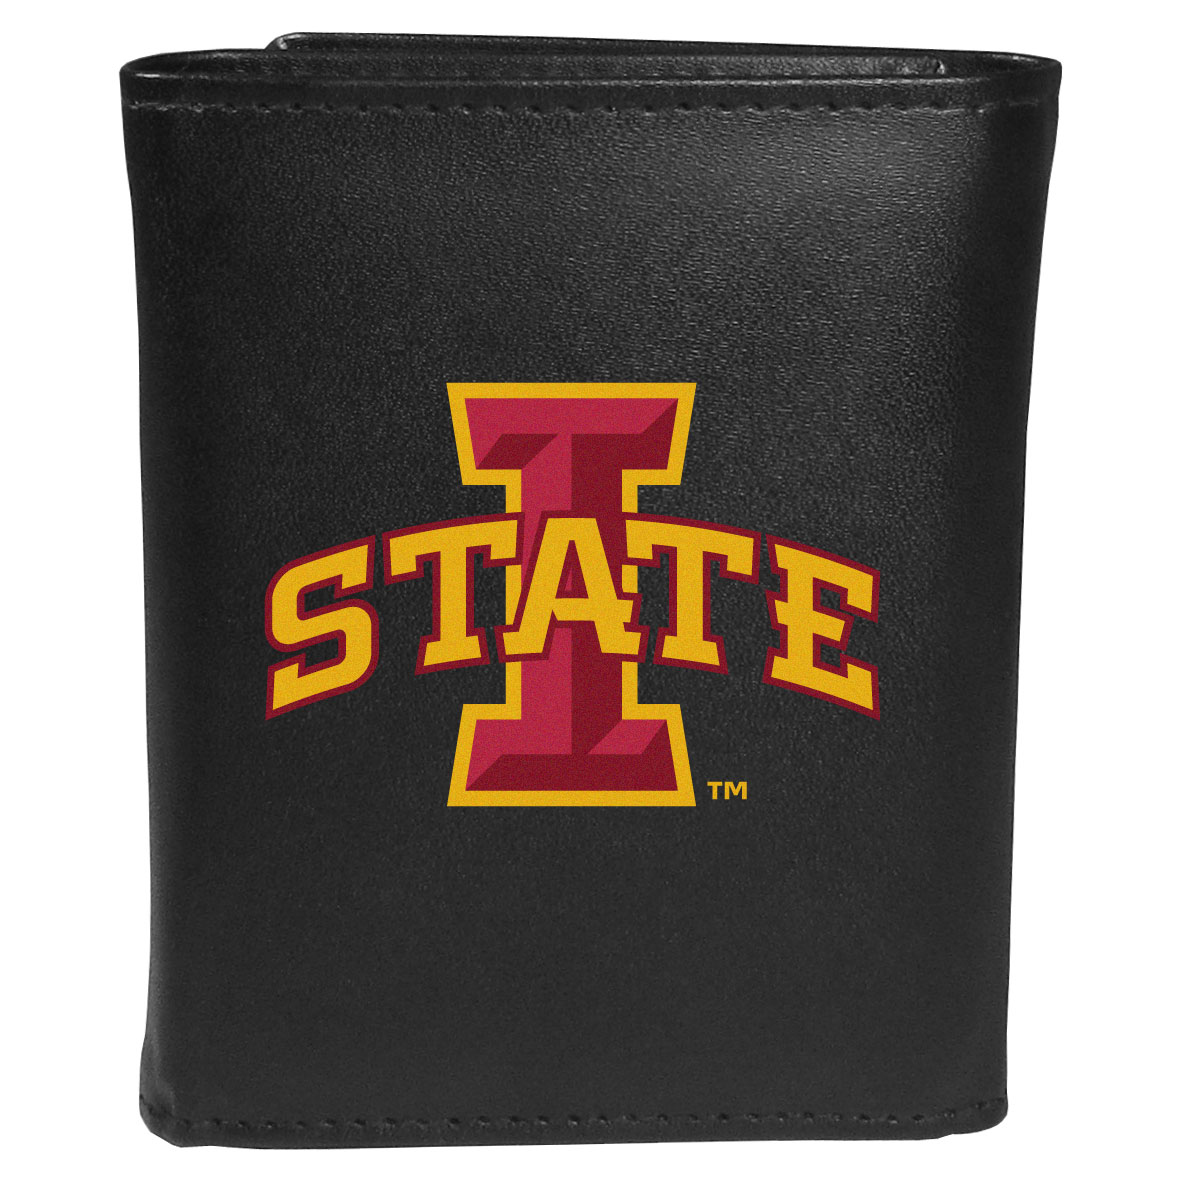 Iowa St. Cyclones Leather Tri-fold Wallet, Large Logo - Our classic fine leather tri-fold wallet is meticulously crafted with genuine leather that will age beautifully so you will have a quality wallet for years to come. This is fan apparel at its finest. The wallet is packed with organizational  features; lots of credit card slots, large billfold pocket, and a window ID slot. The front of the wallet features an extra large Iowa St. Cyclones printed logo.